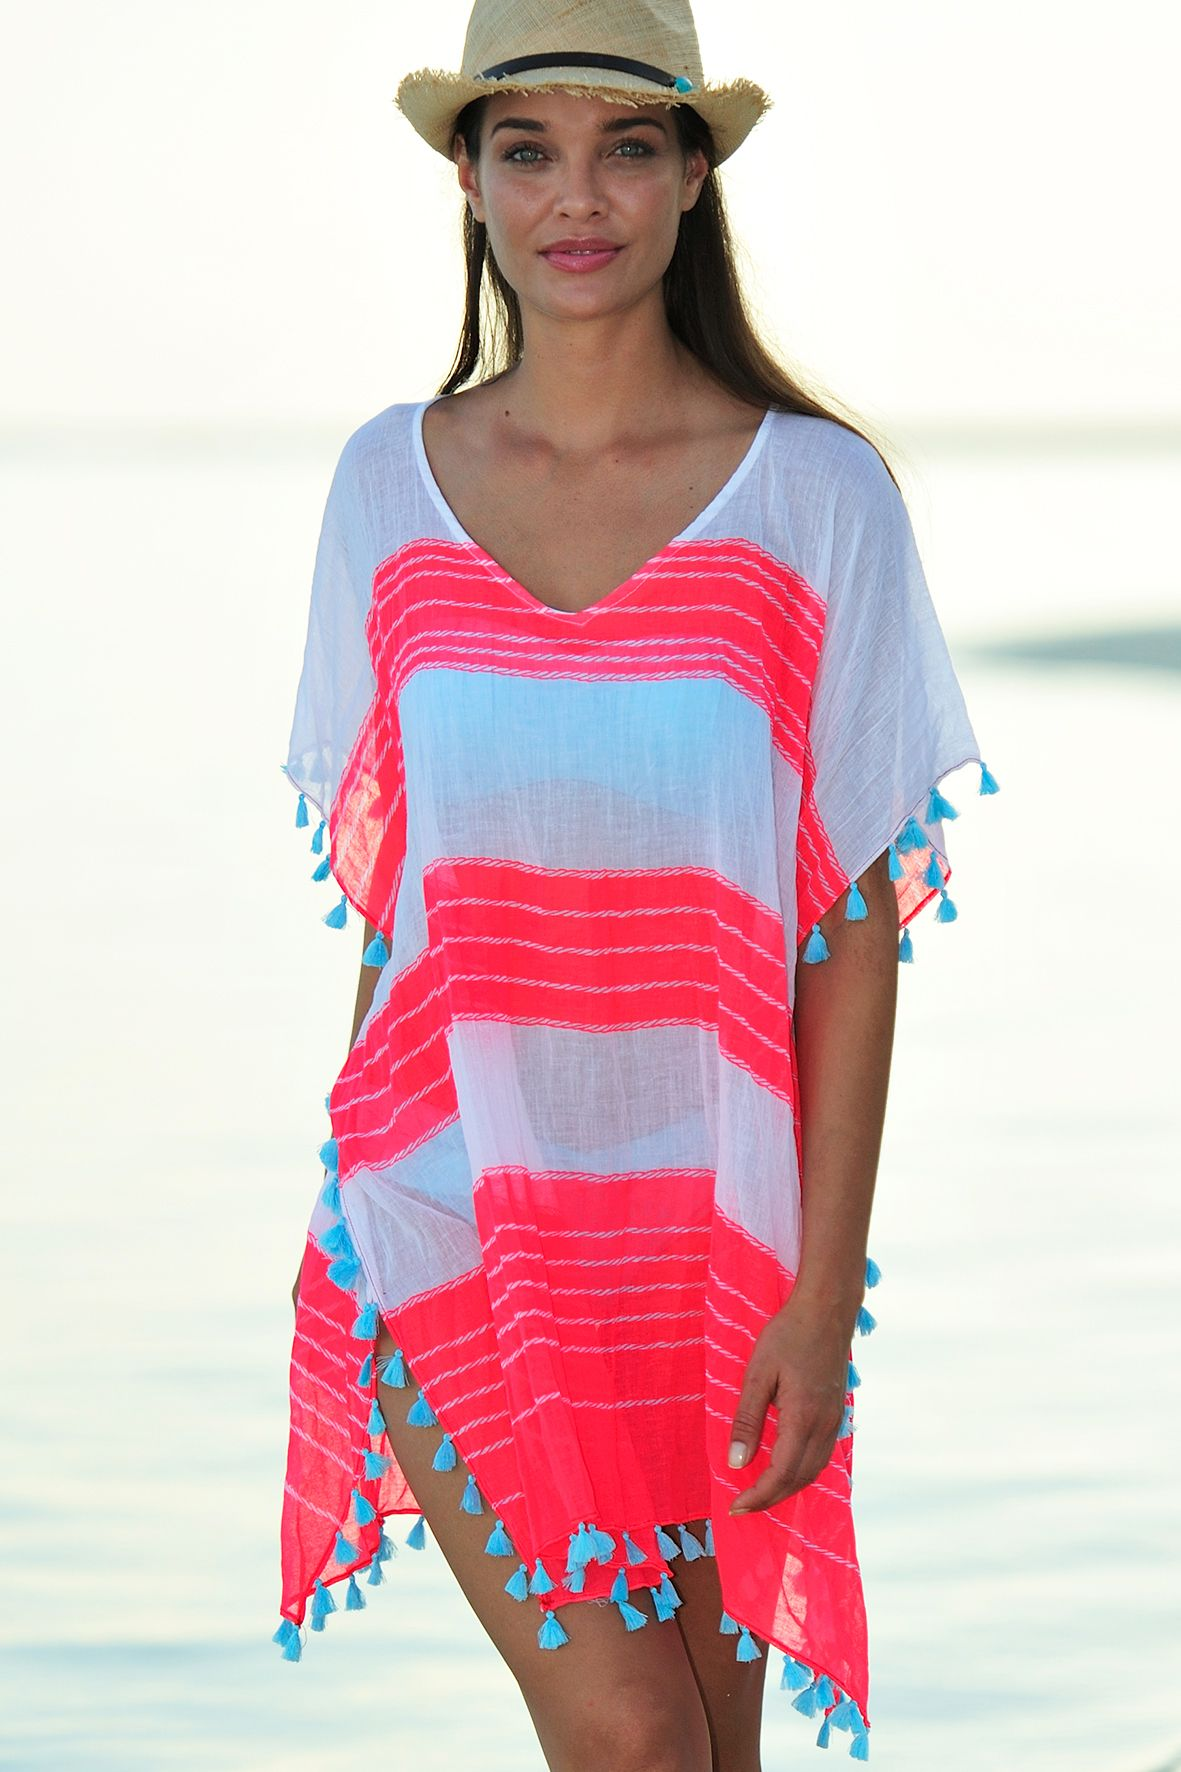 Designer Kaftans and Beach Cover-ups by Seafolly and other designer brands